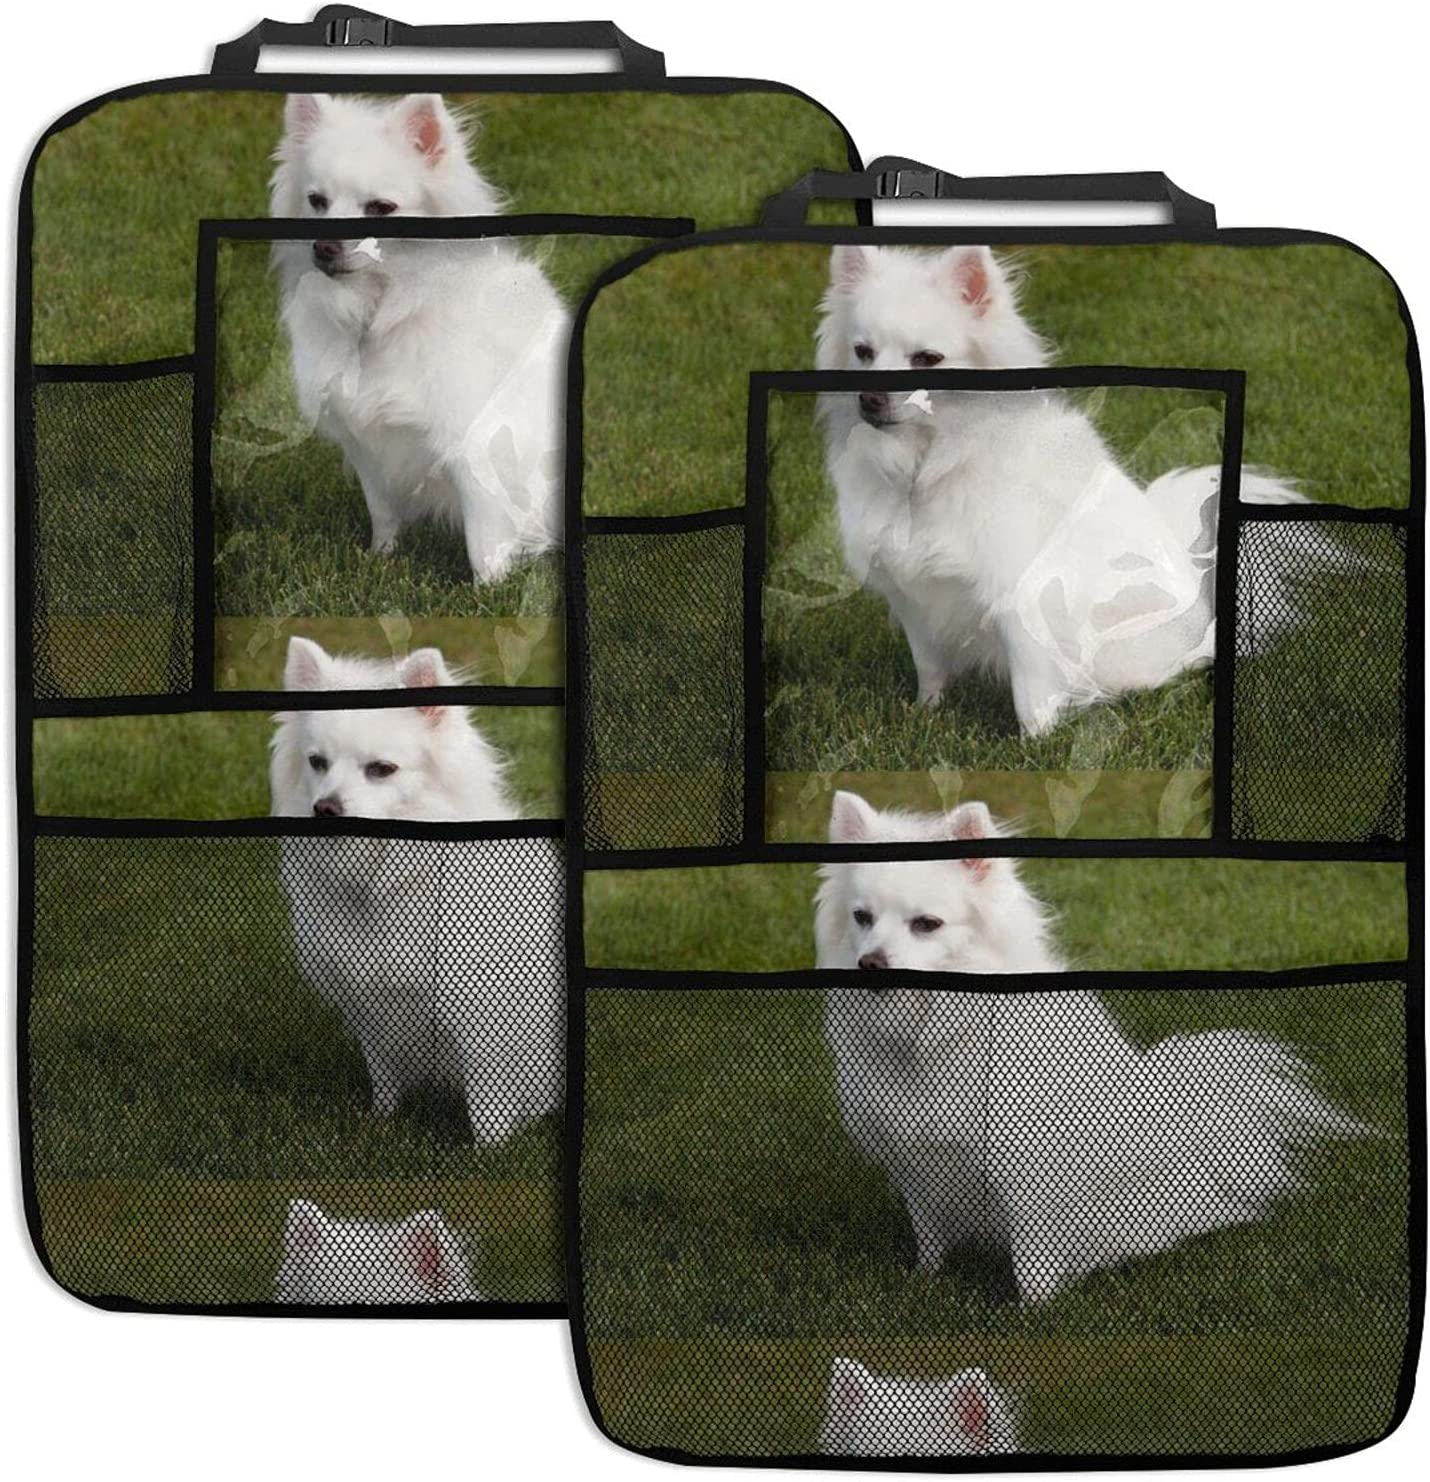 American Eskimo Recommended Dog Car Free shipping anywhere in the nation Seat Back Multi Organizer Function S